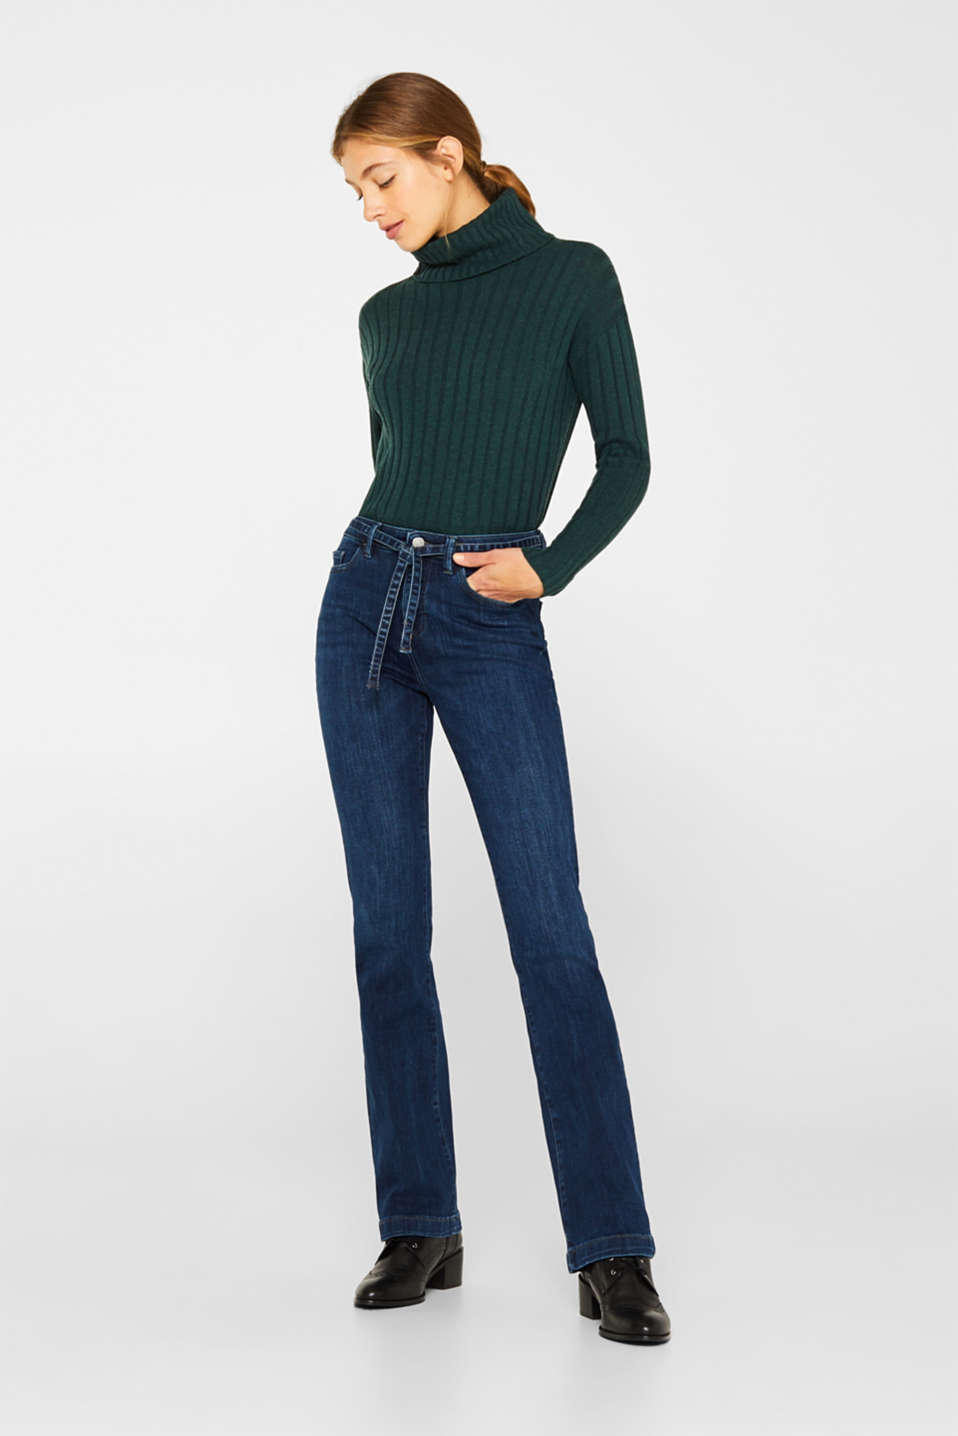 Esprit - Stretch jeans with a tie-around belt